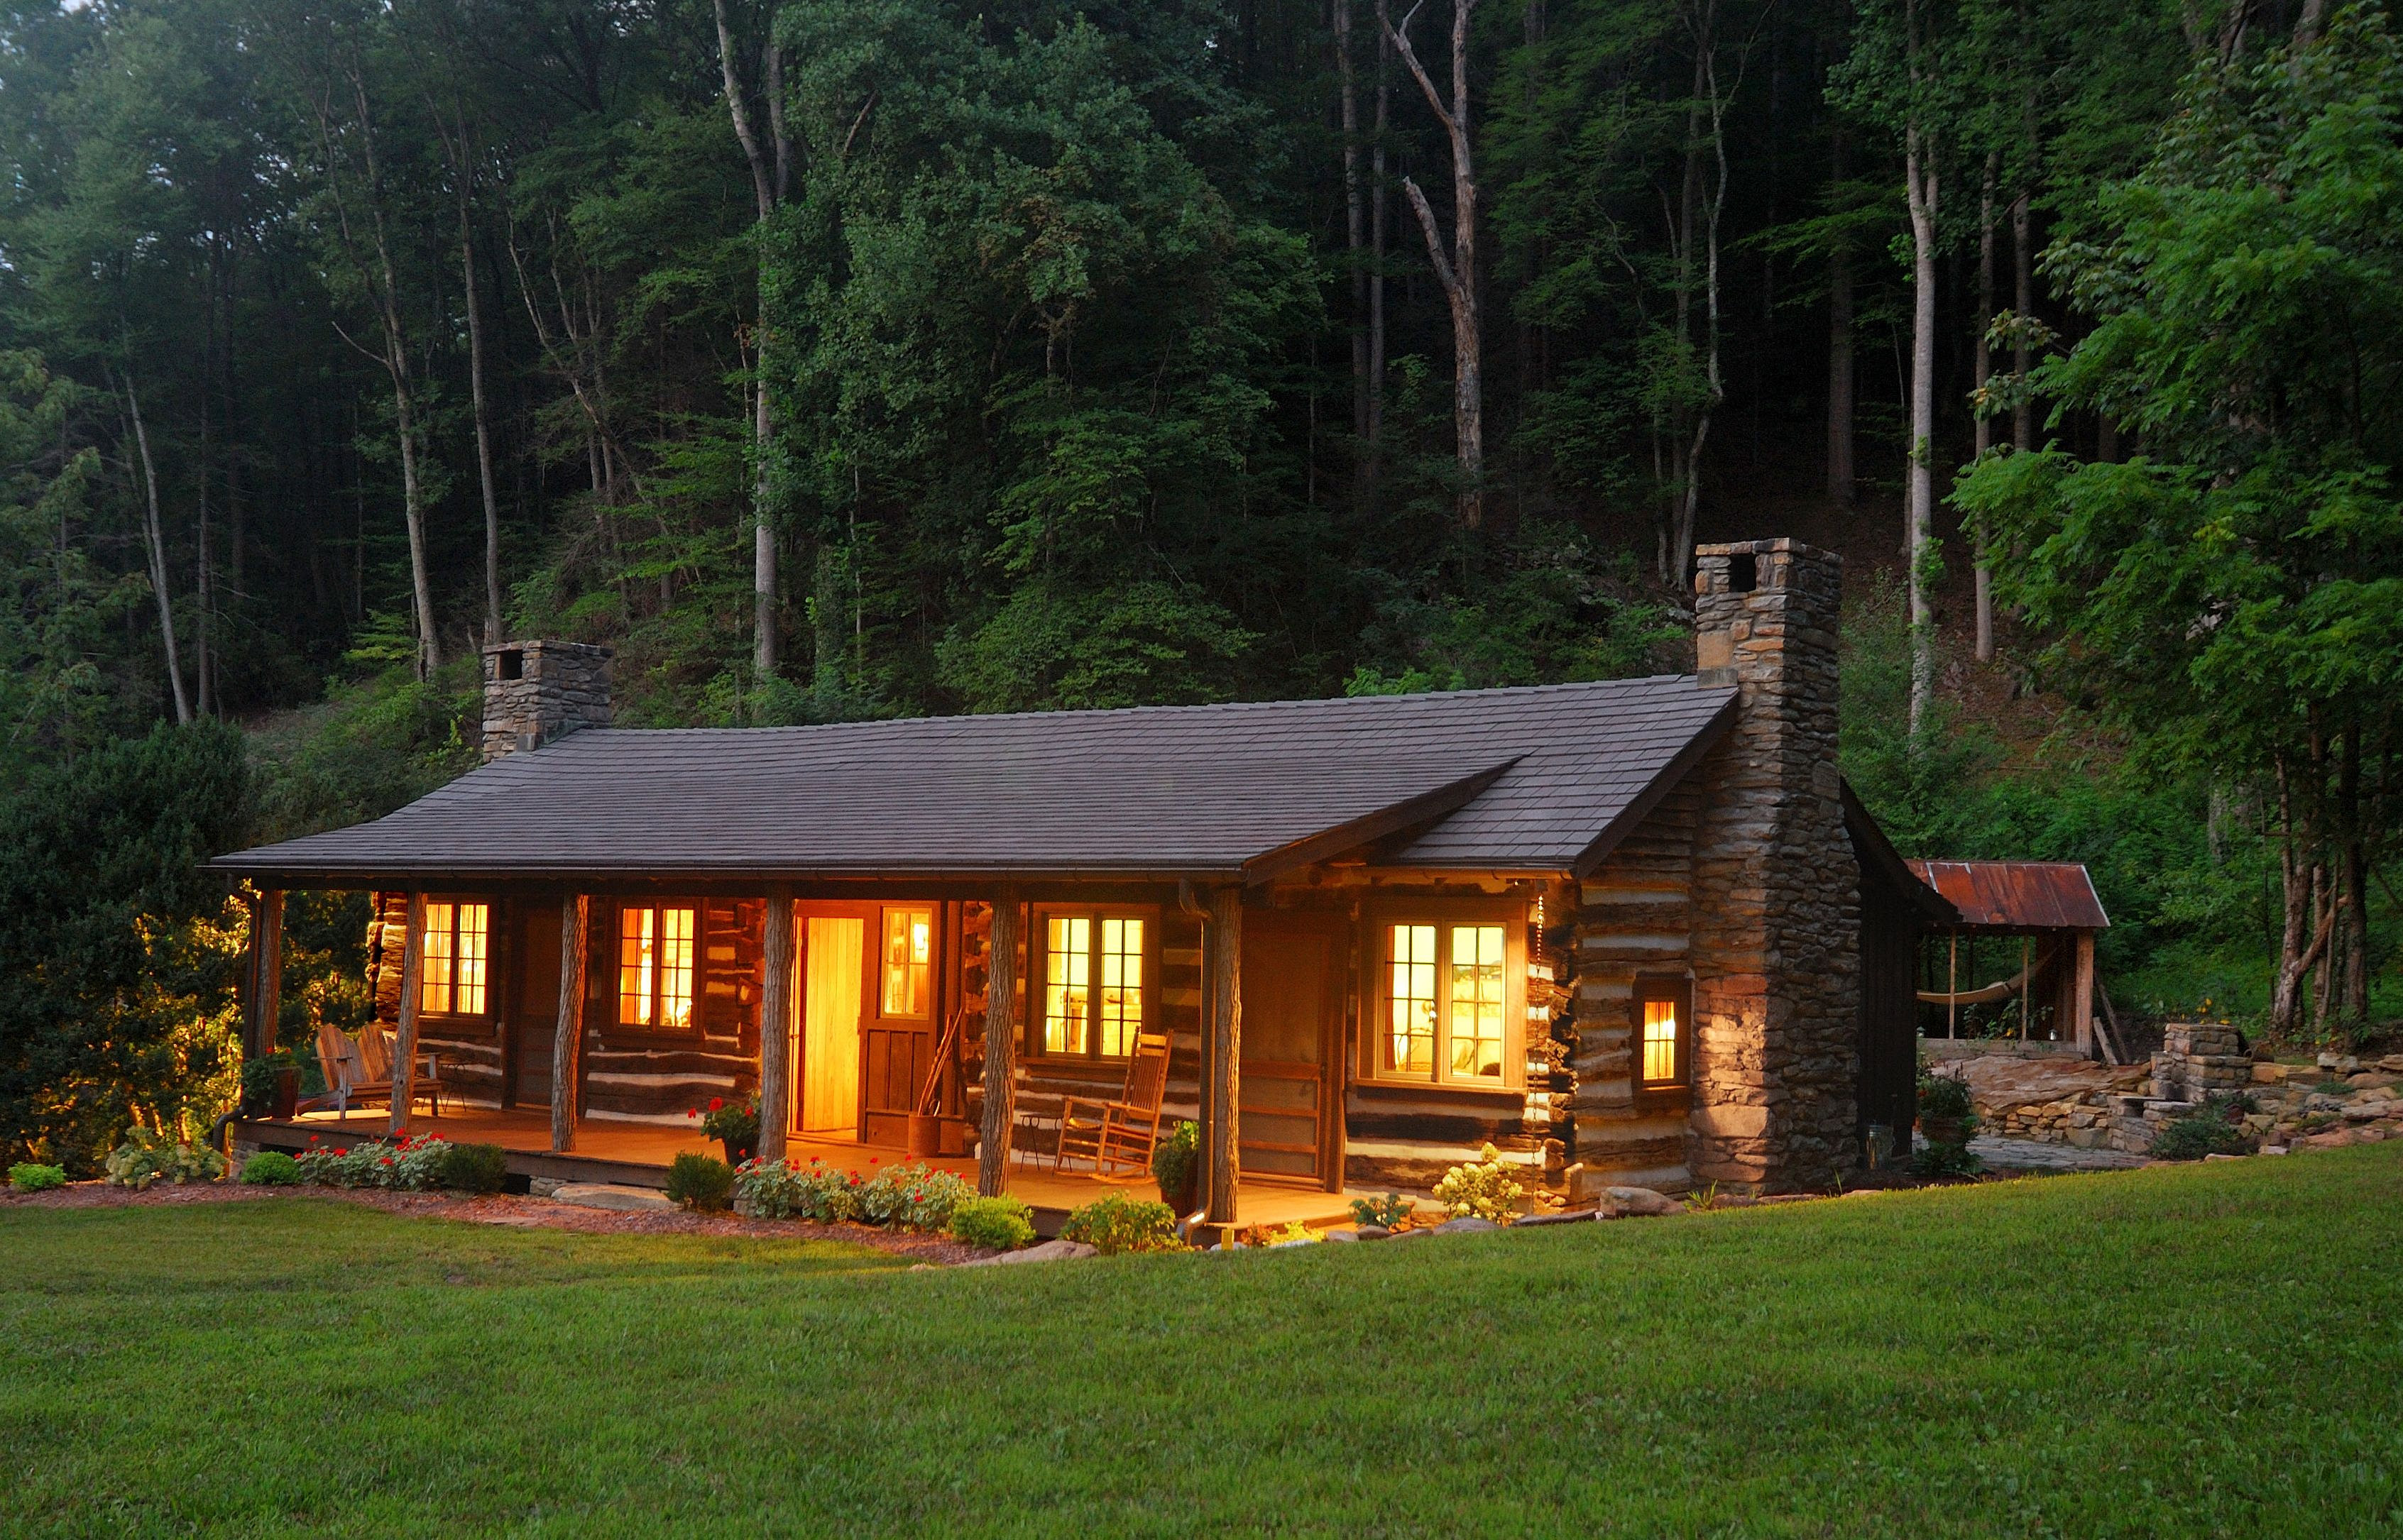 Log cabin in the woods by a lake - Rustic